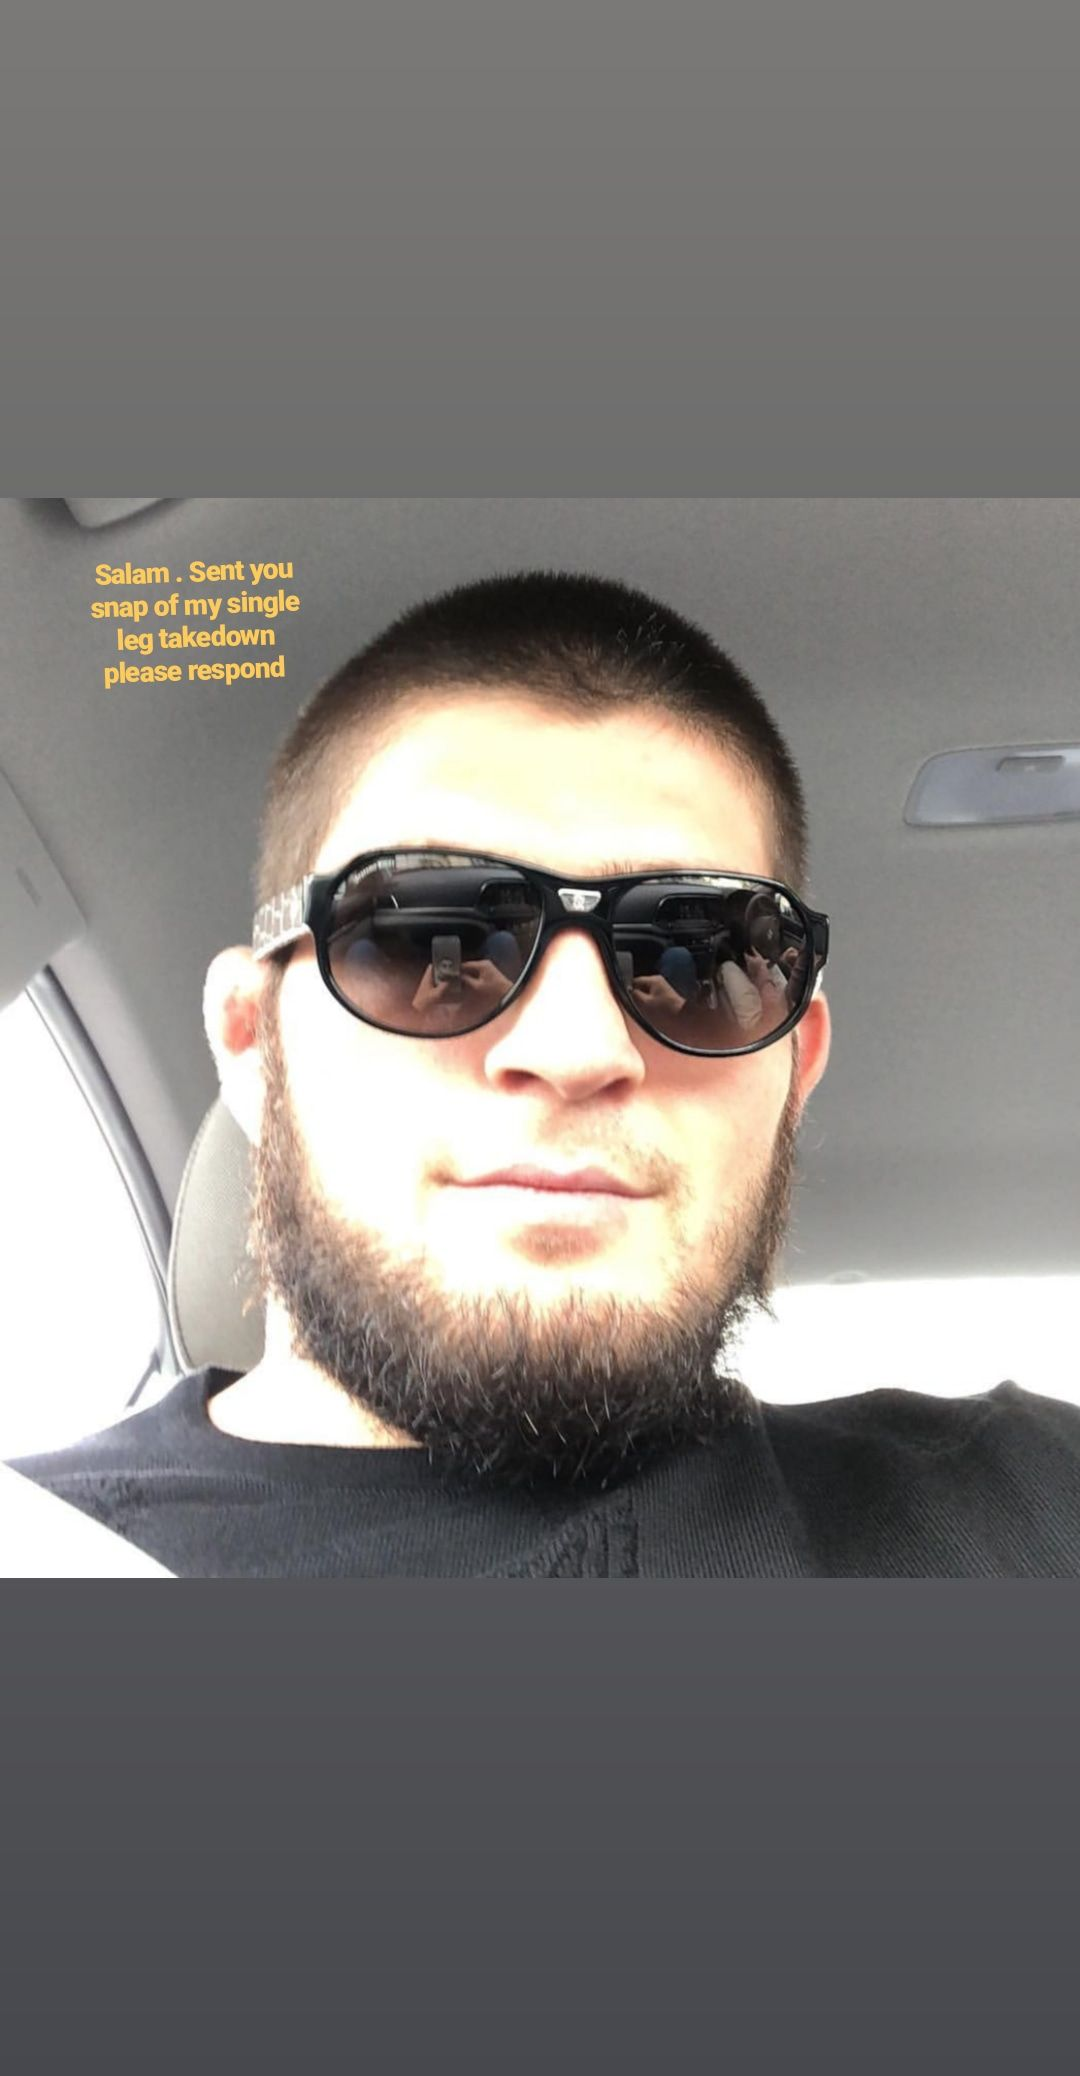 Khabib getting left on seen music indieartist chicago